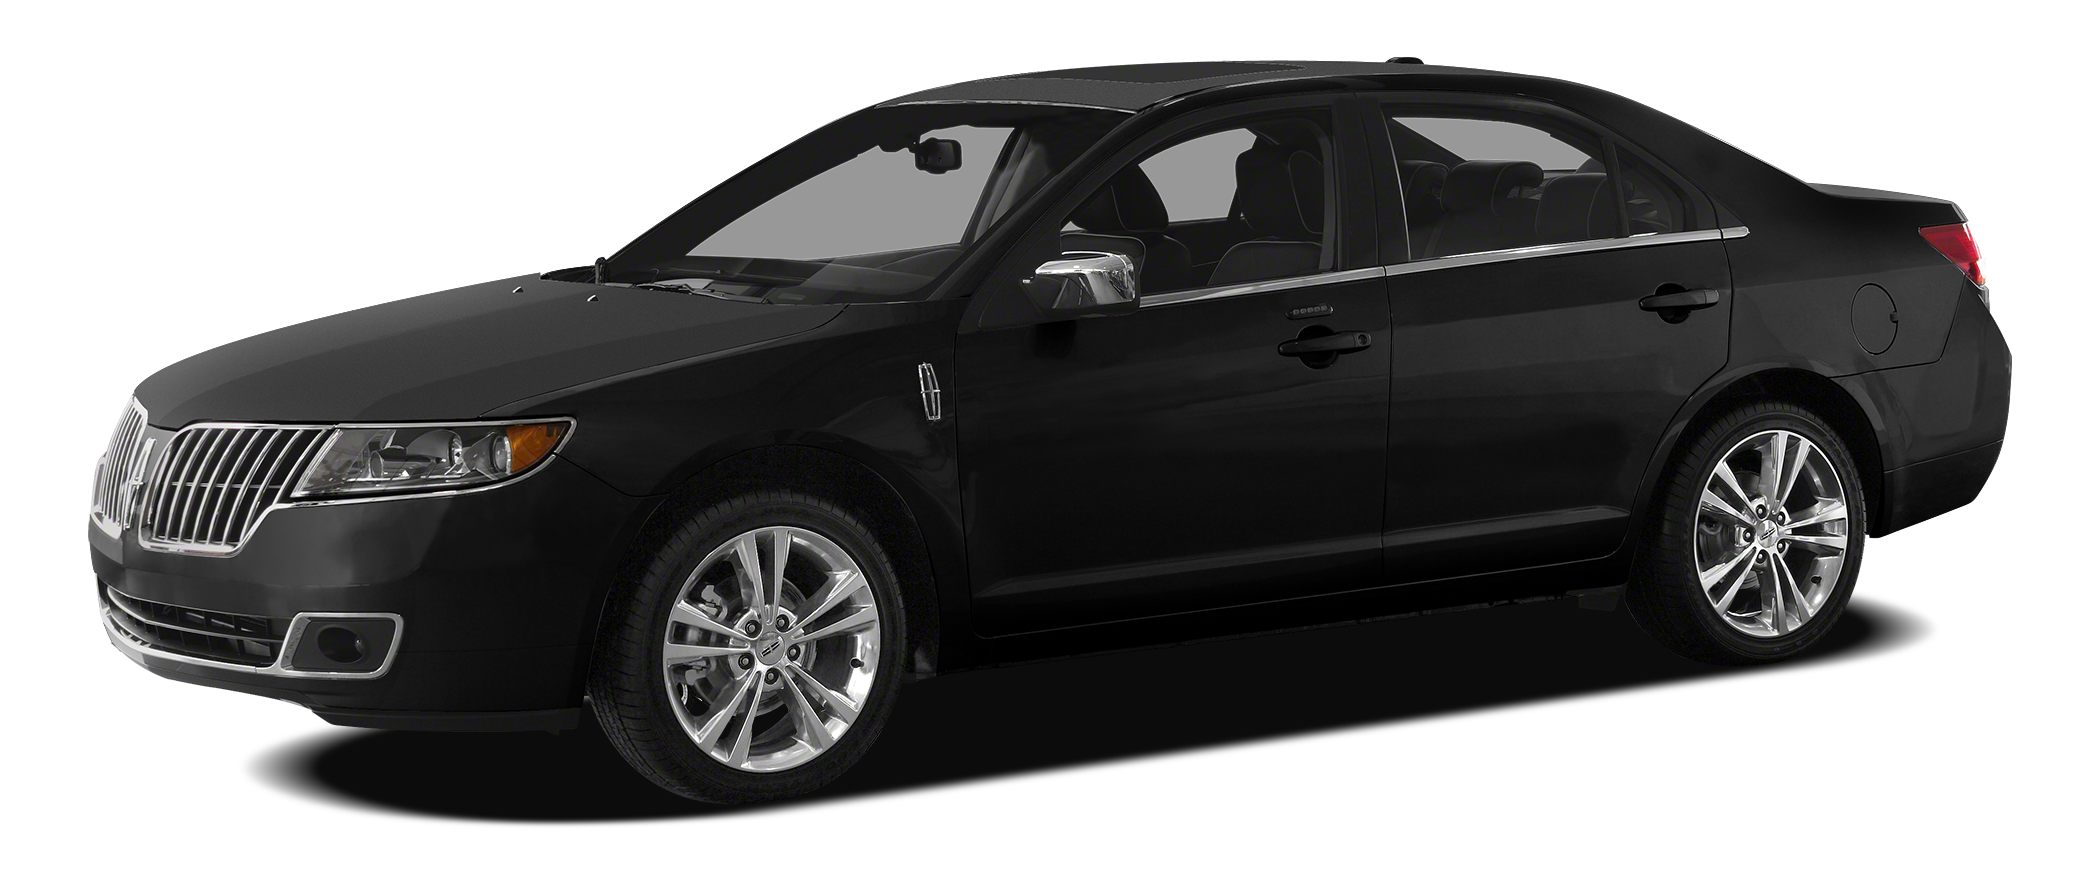 2011 Lincoln MKZ Base OUR PRICESYoure probably wondering why our prices are so much lower than t